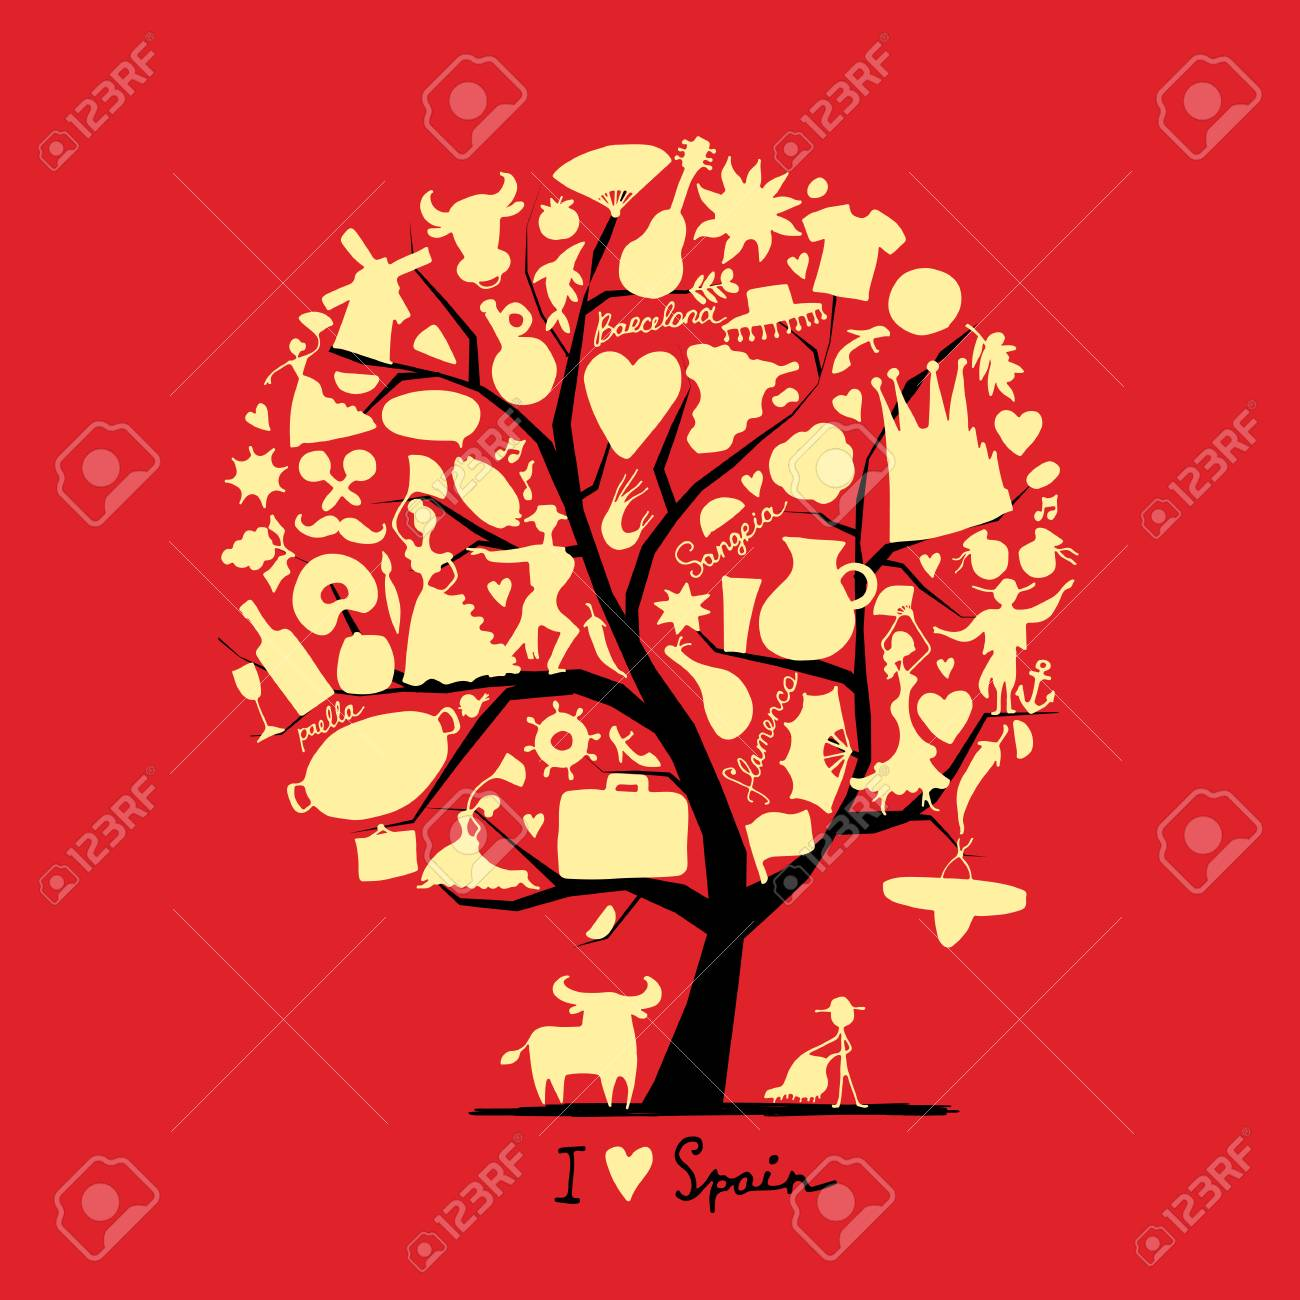 Art tree with spain symbols for your design royalty free cliparts art tree with spain symbols for your design stock vector 73863759 buycottarizona Images